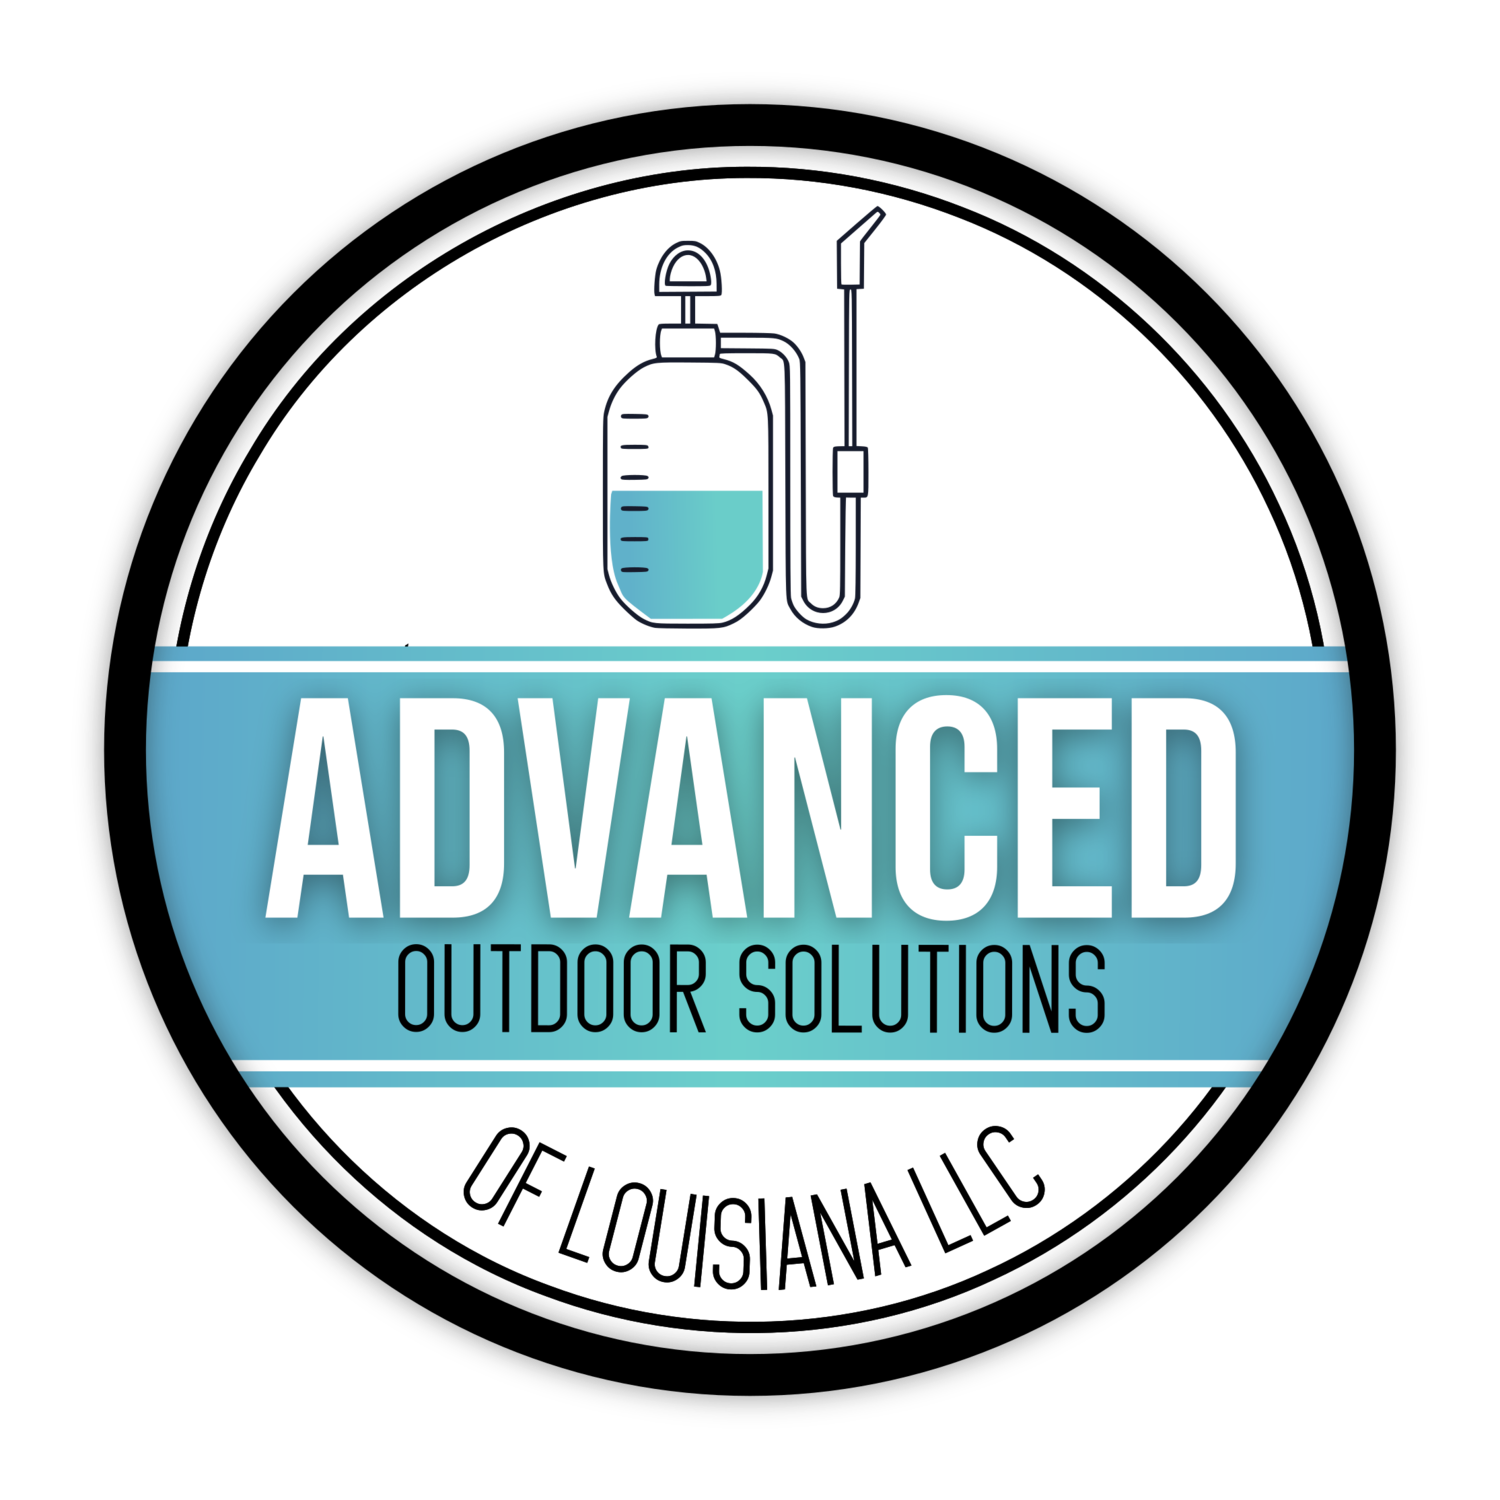 Advanced Outdoor Solutions